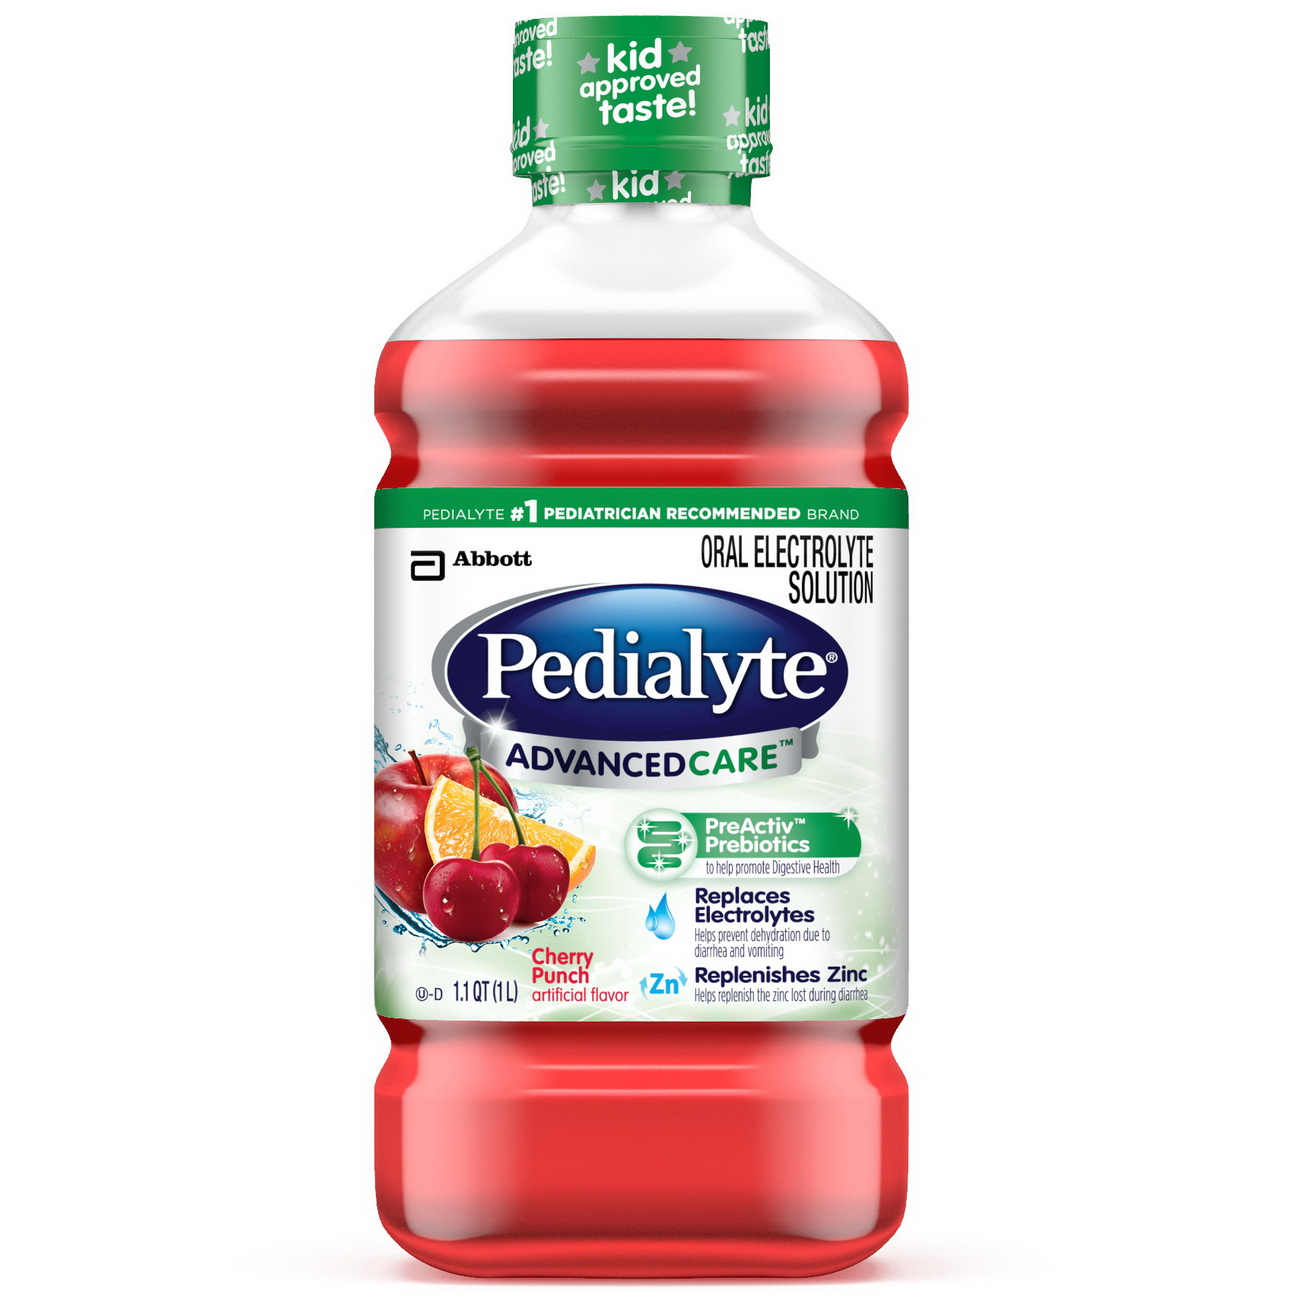 Pedialyte Advanced Care Oral Electrolyte Solution, Cherry Punch, 1-L